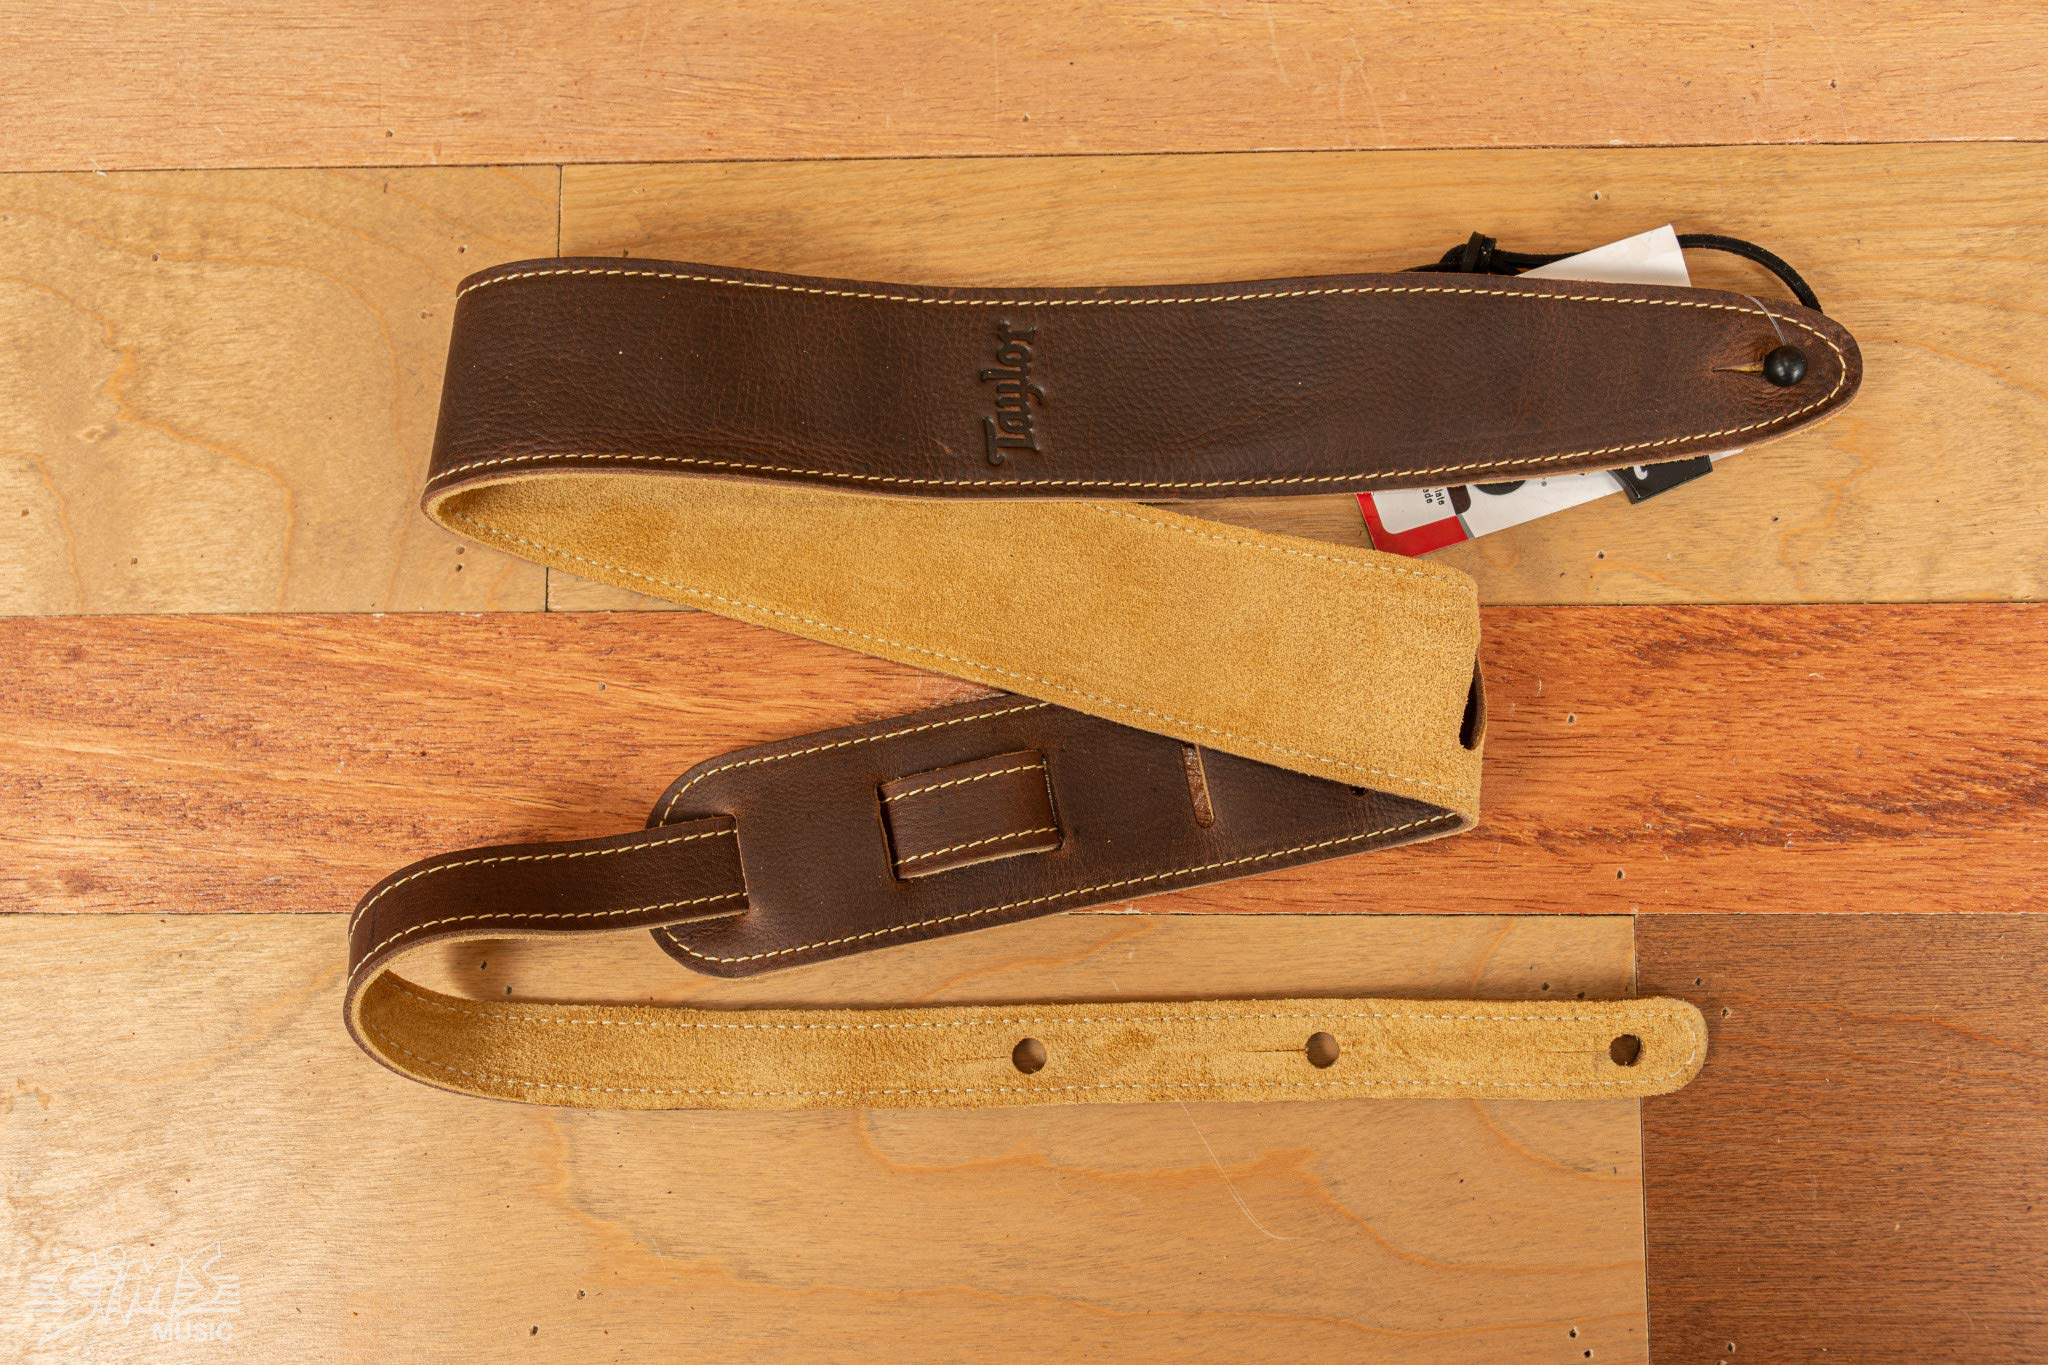 Taylor Leather Suede 2.5 Inches Guitar Strap - Chocolate Brown by Taylor